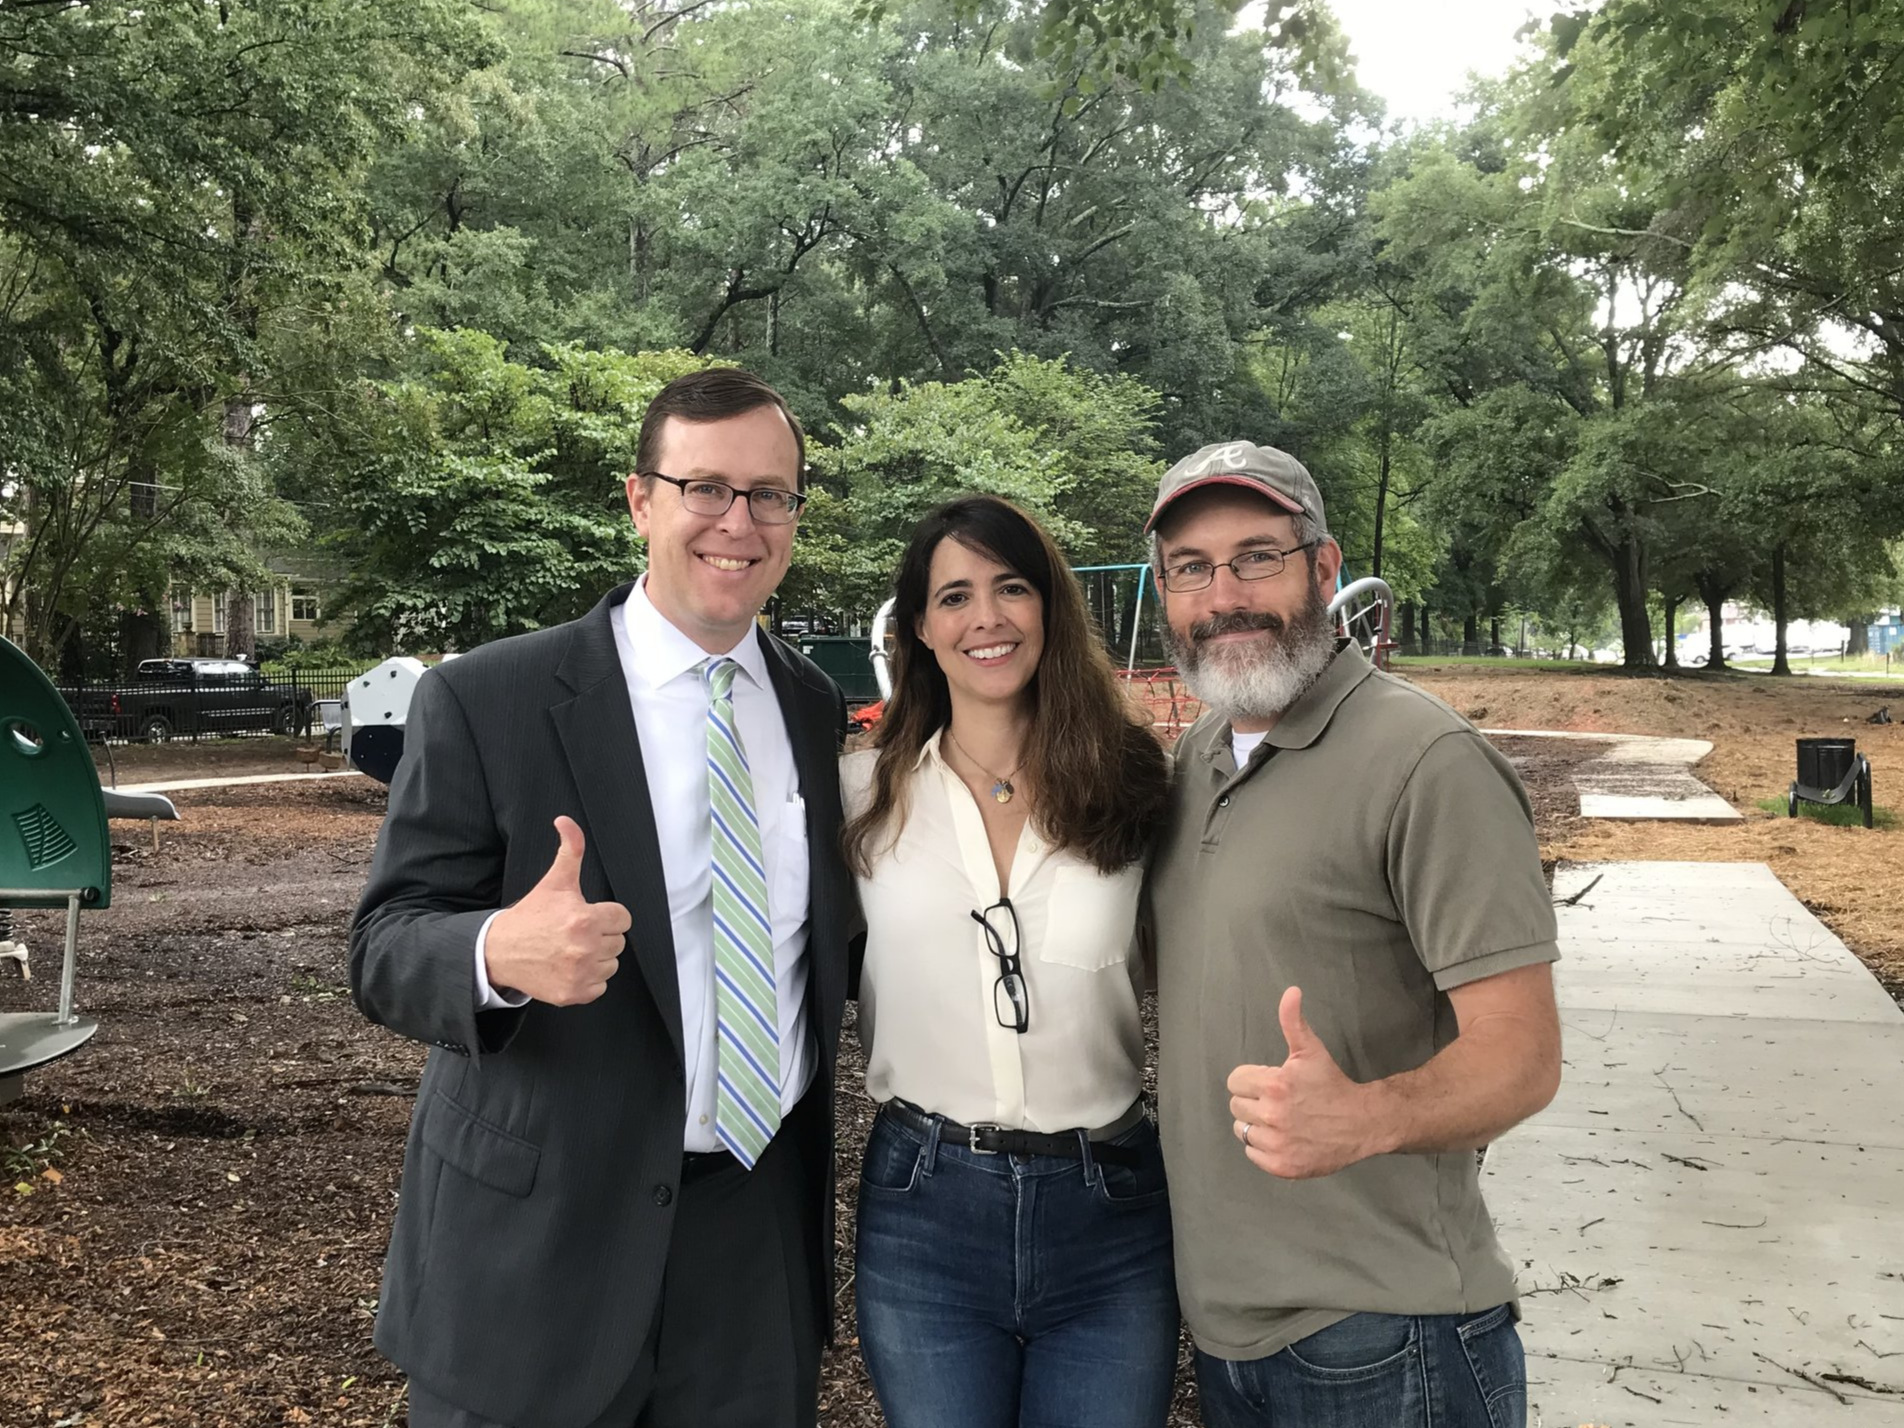 Michael Halicki, Park Pride Executive Director (left); González Whitaker; John Ahern, Park Pride Volunteer Manager, at the Sara J. González Park while it was under construction, 2018.